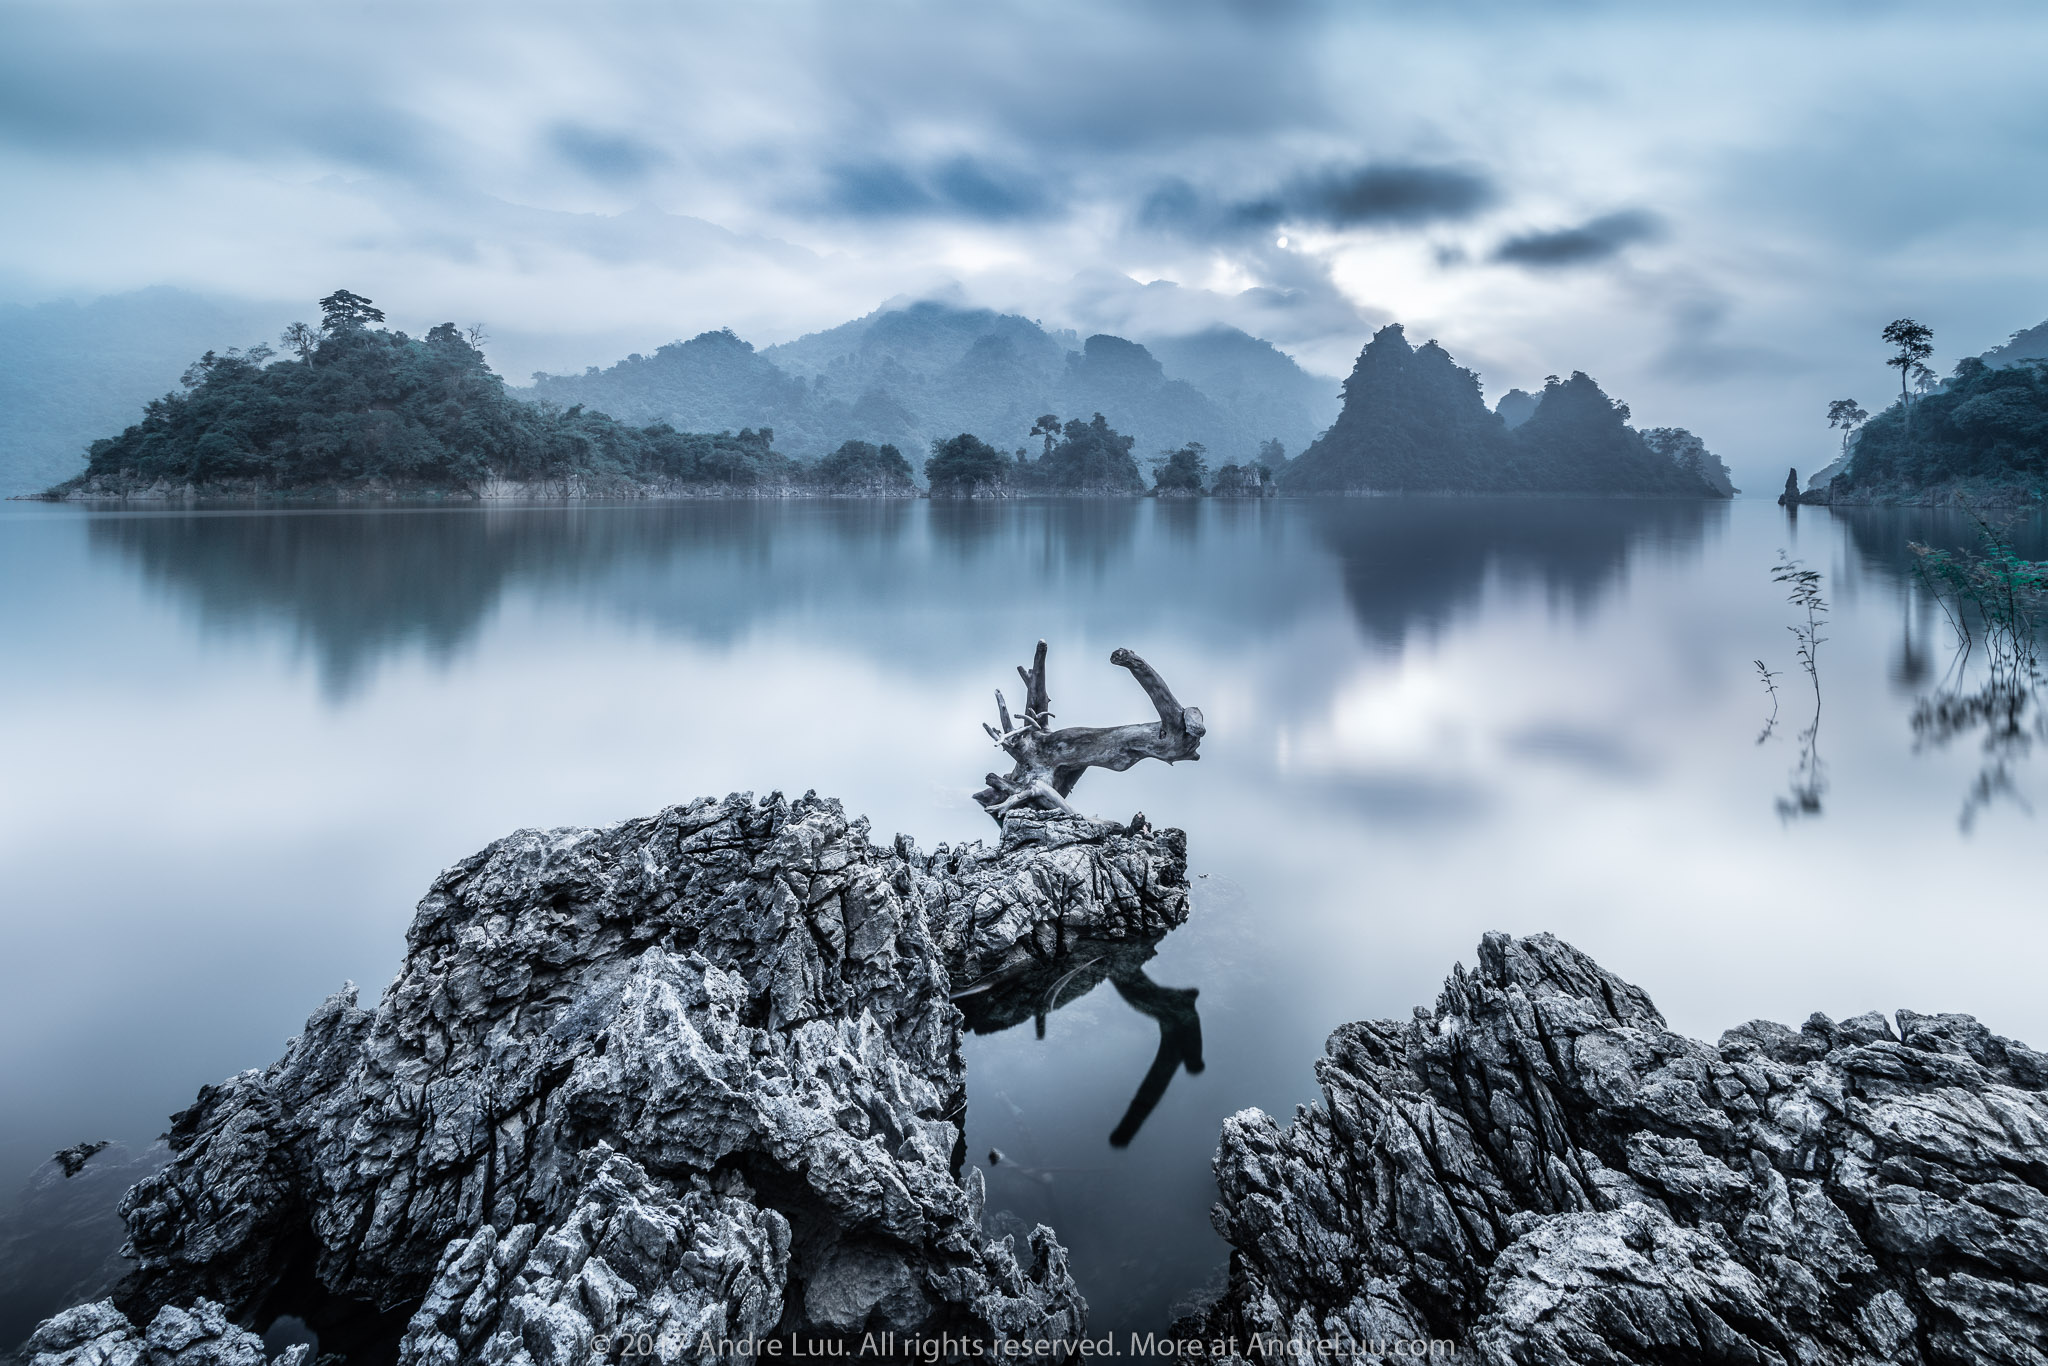 VẦN VŨ NA HANG (Viking Clouds) 61s f/11 ISO 50 WB 3500, Sony a7rII + Voigtlander 12v2 (Mod AndreLuu) +Center Filter + Gnd 3rev  +  ND 10. Na Hang, Tuyên Quang @ 7:17am.